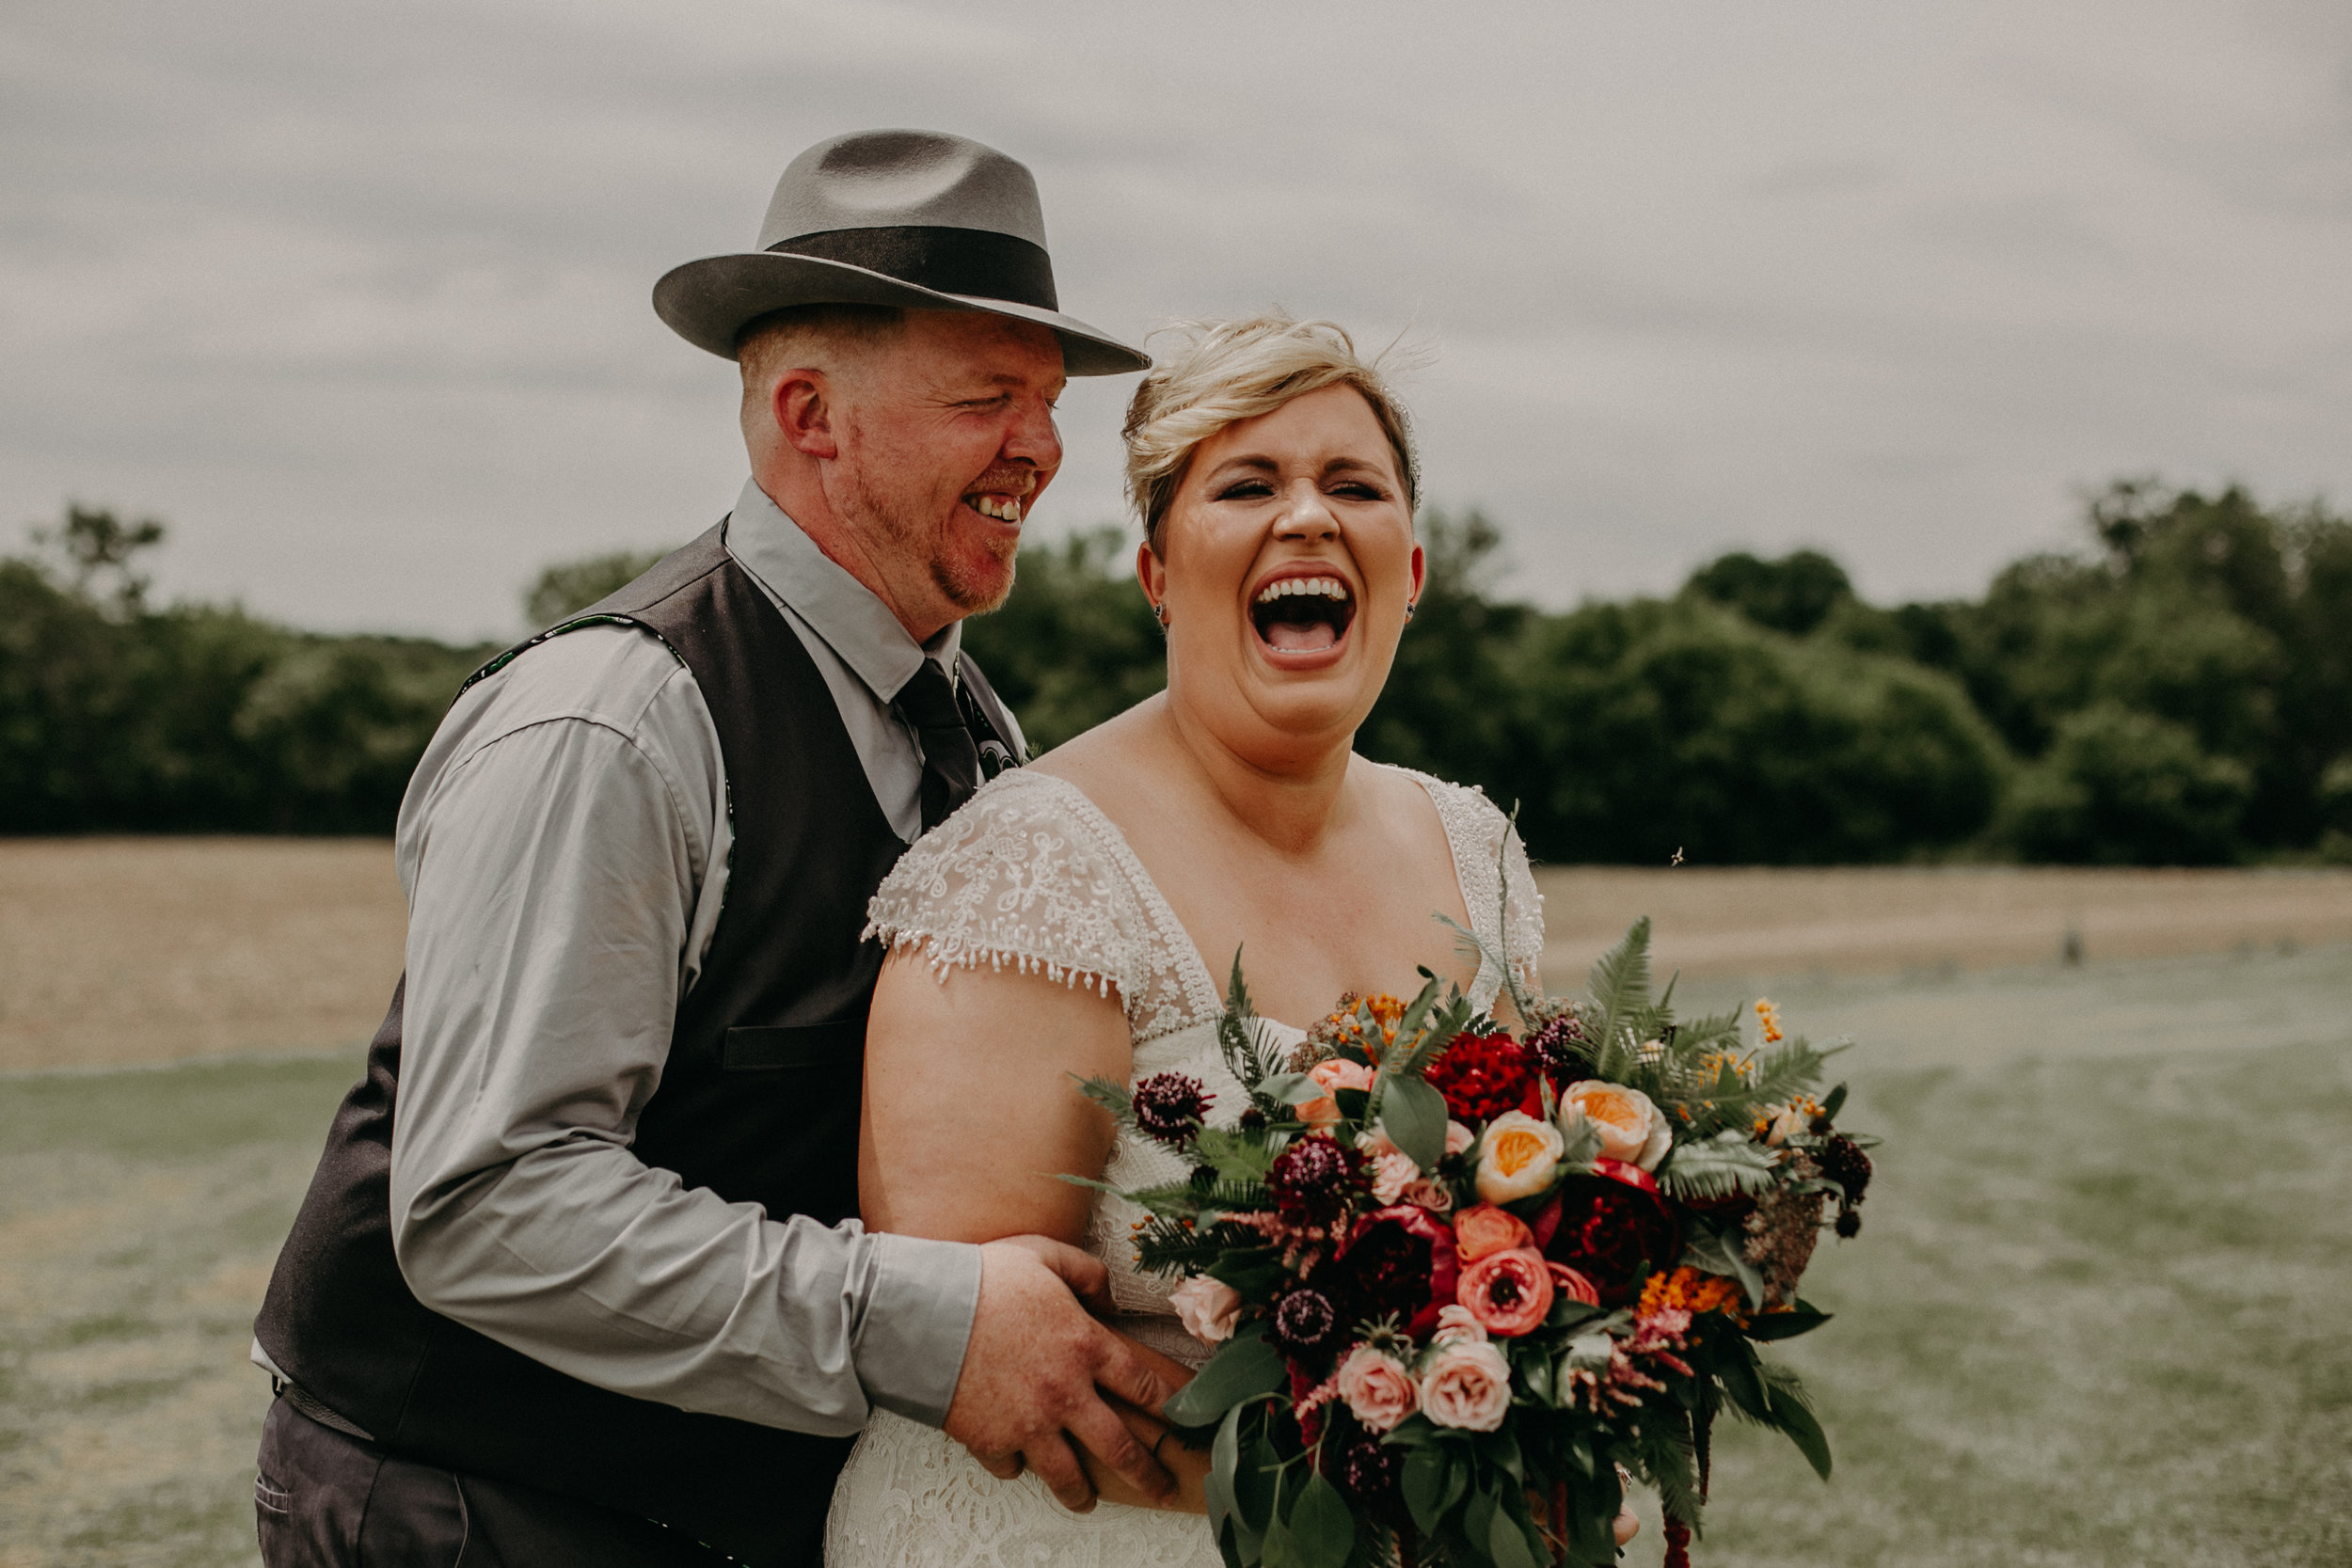 joyful and happy wedding day at Jean Acres Barn in Ellsworth WI captured by Andrea Wagner Photography